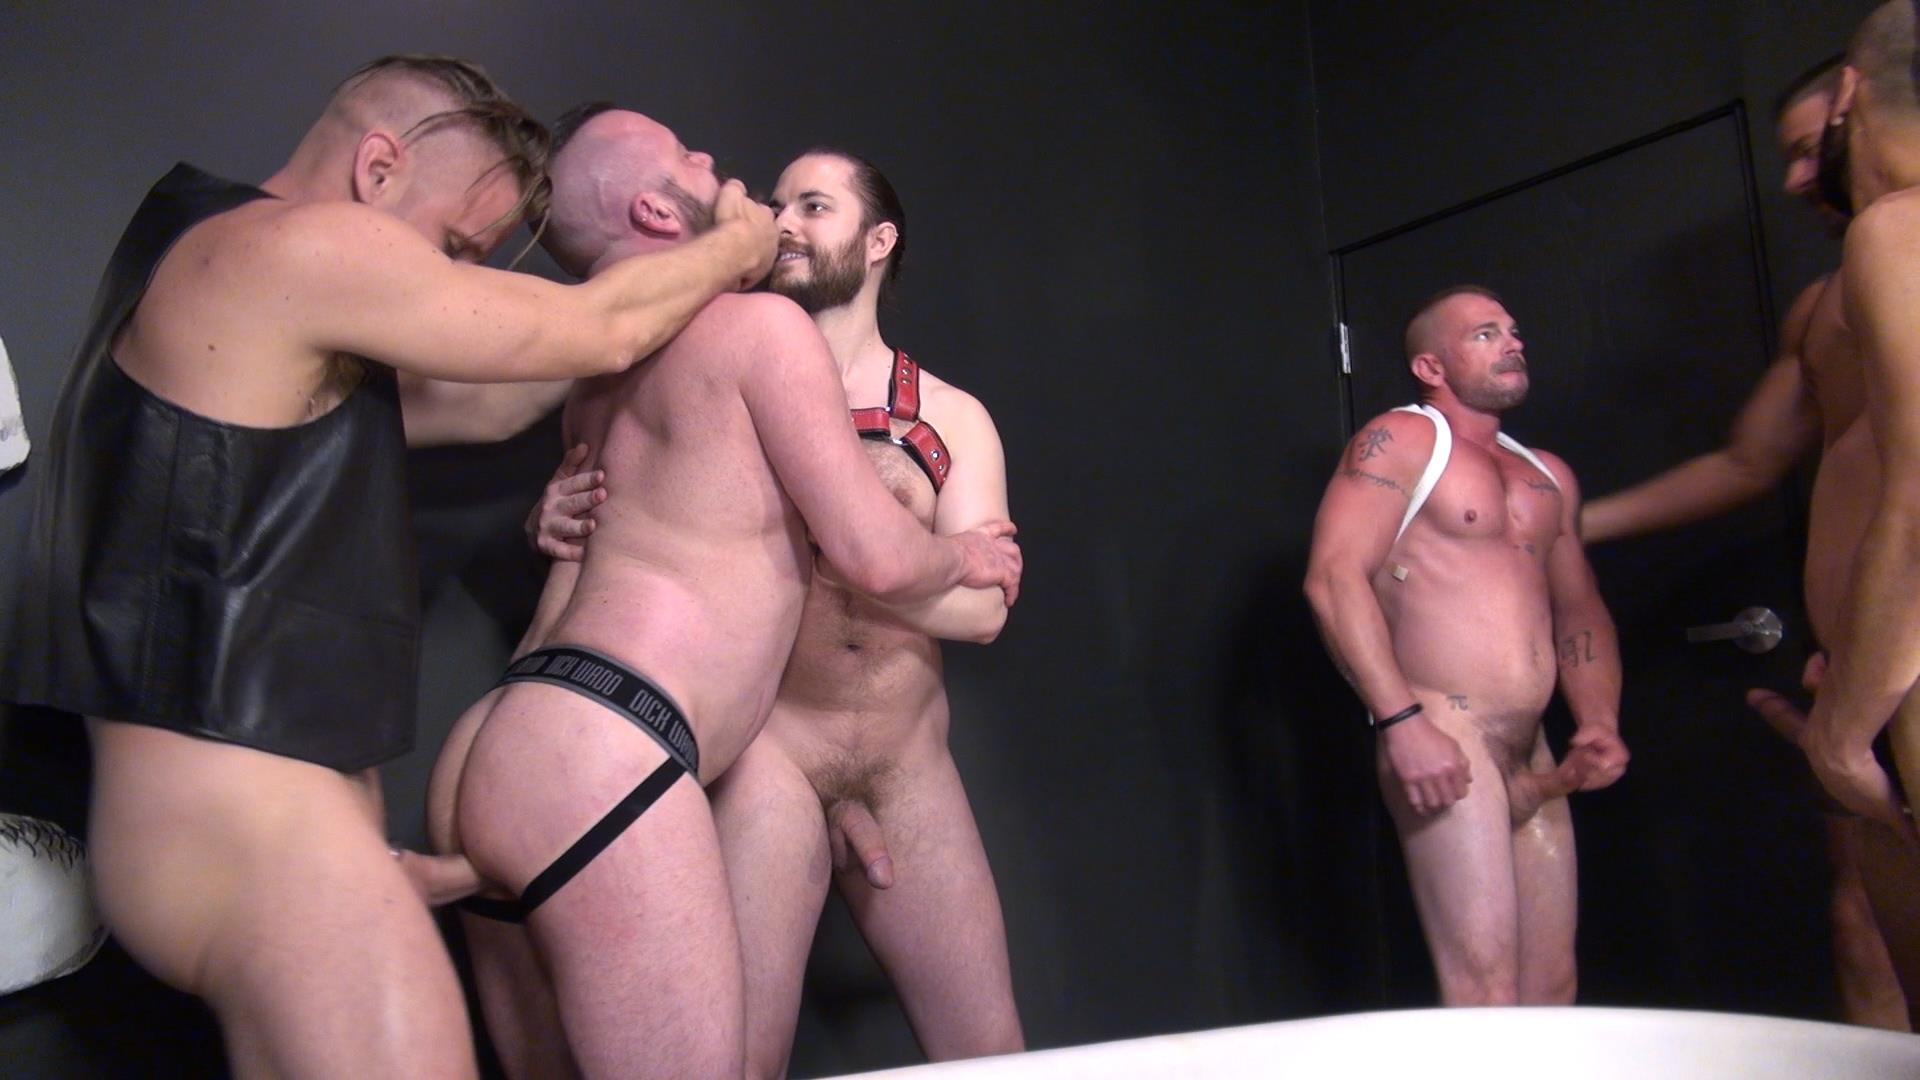 Raw-and-Rough-Piss-Tub-Bareback-Sex-Party-Amateur-Gay-Porn-01 Getting Bareback Fucked In The Piss Tub At The Gay Bar